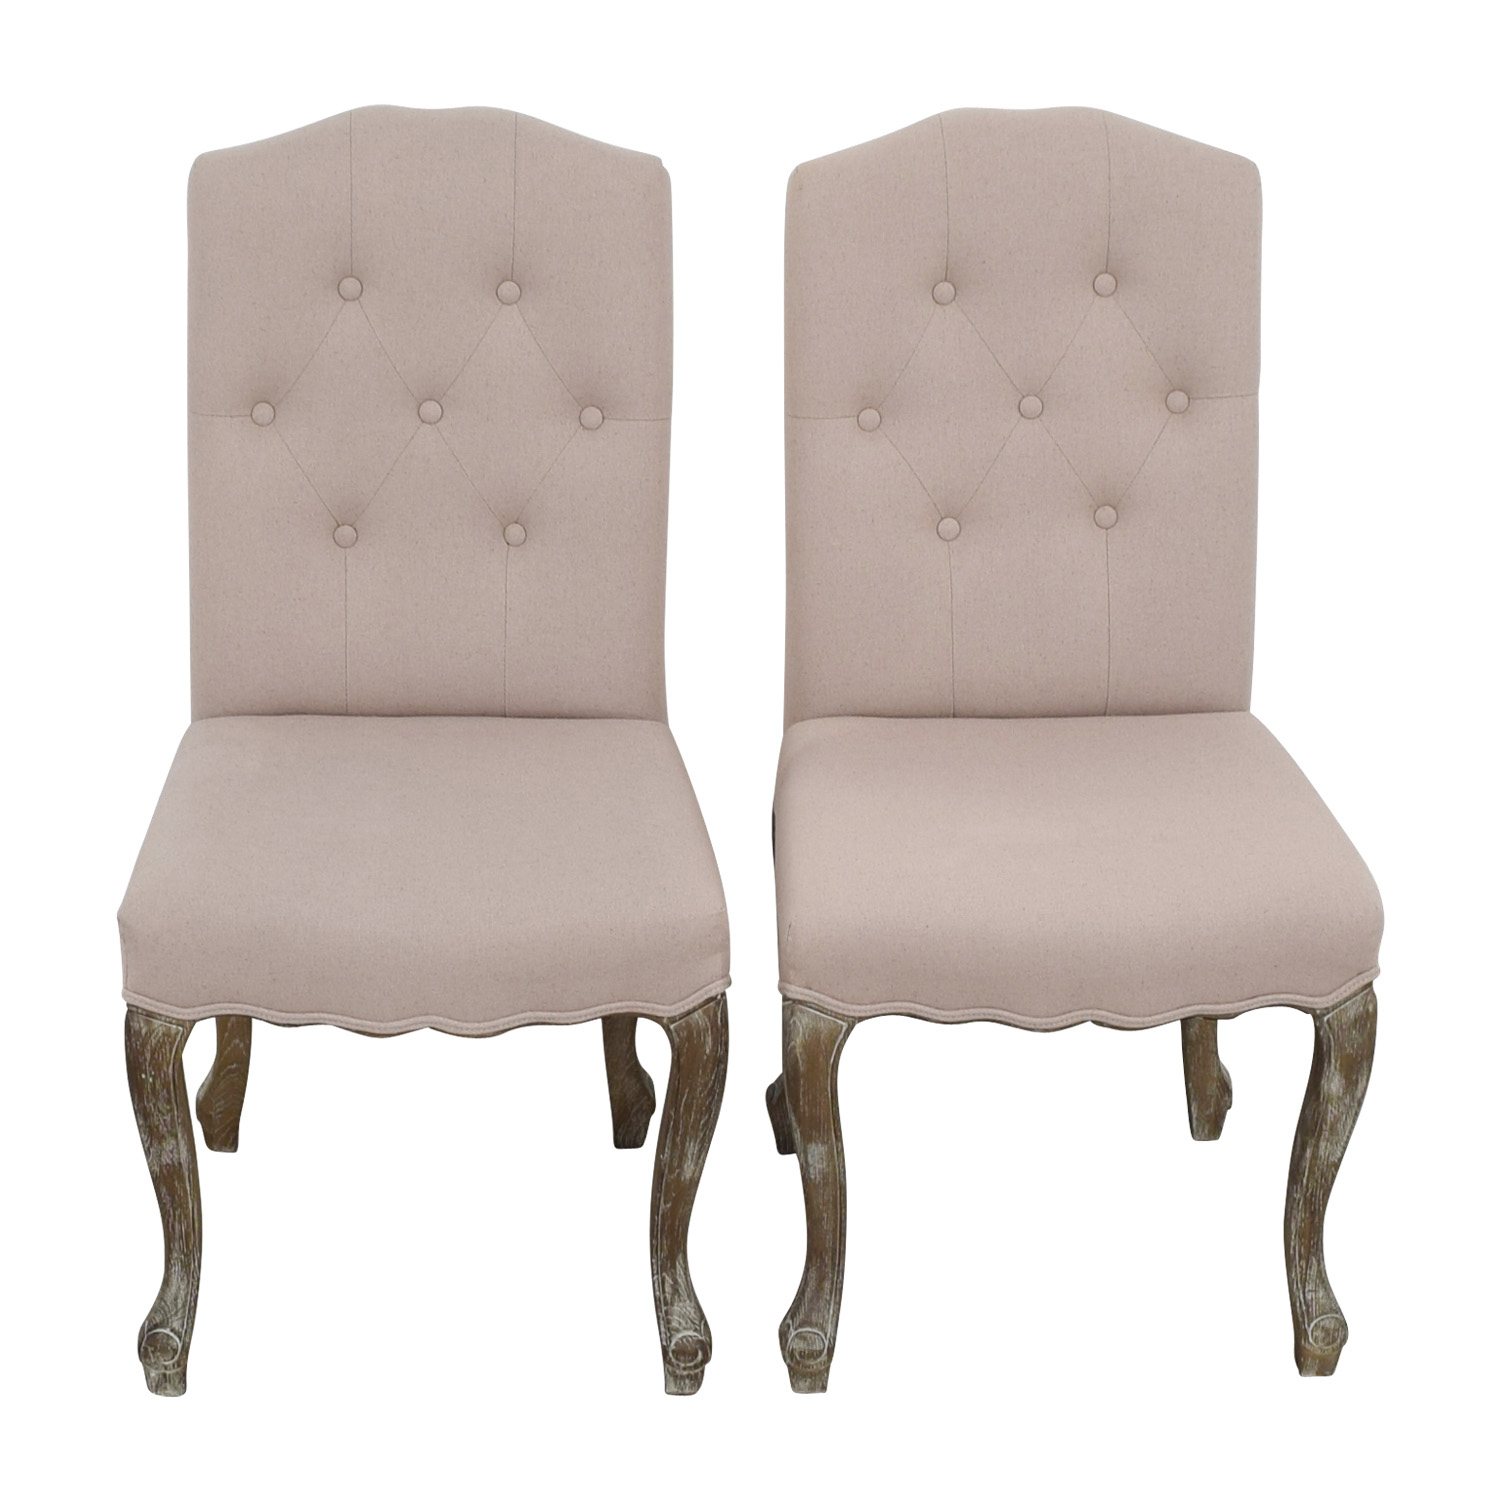 Safavieh Safavieh Tufted Beige Side Chairs Accent Chairs